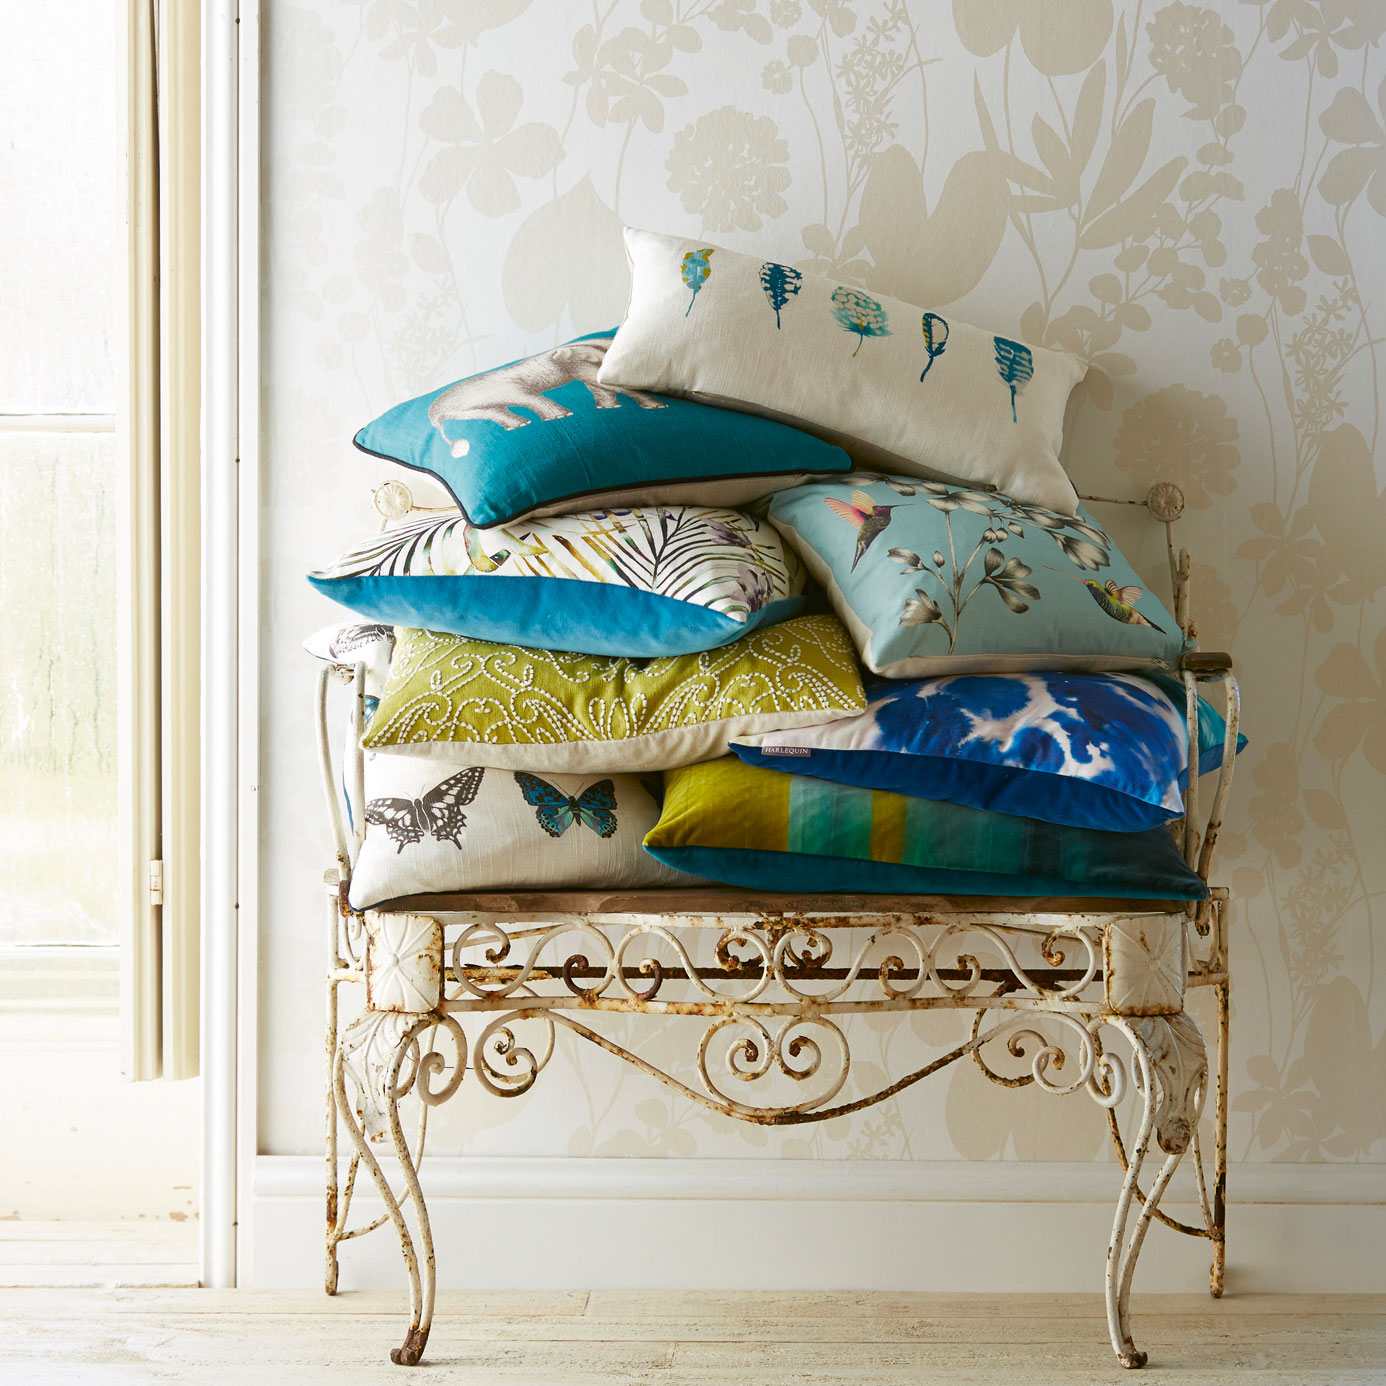 Harlequin-Amazilia-Cushions-blue-aqua-turquoise-butterflies-butterfly-feathers-elephant-03.jpg